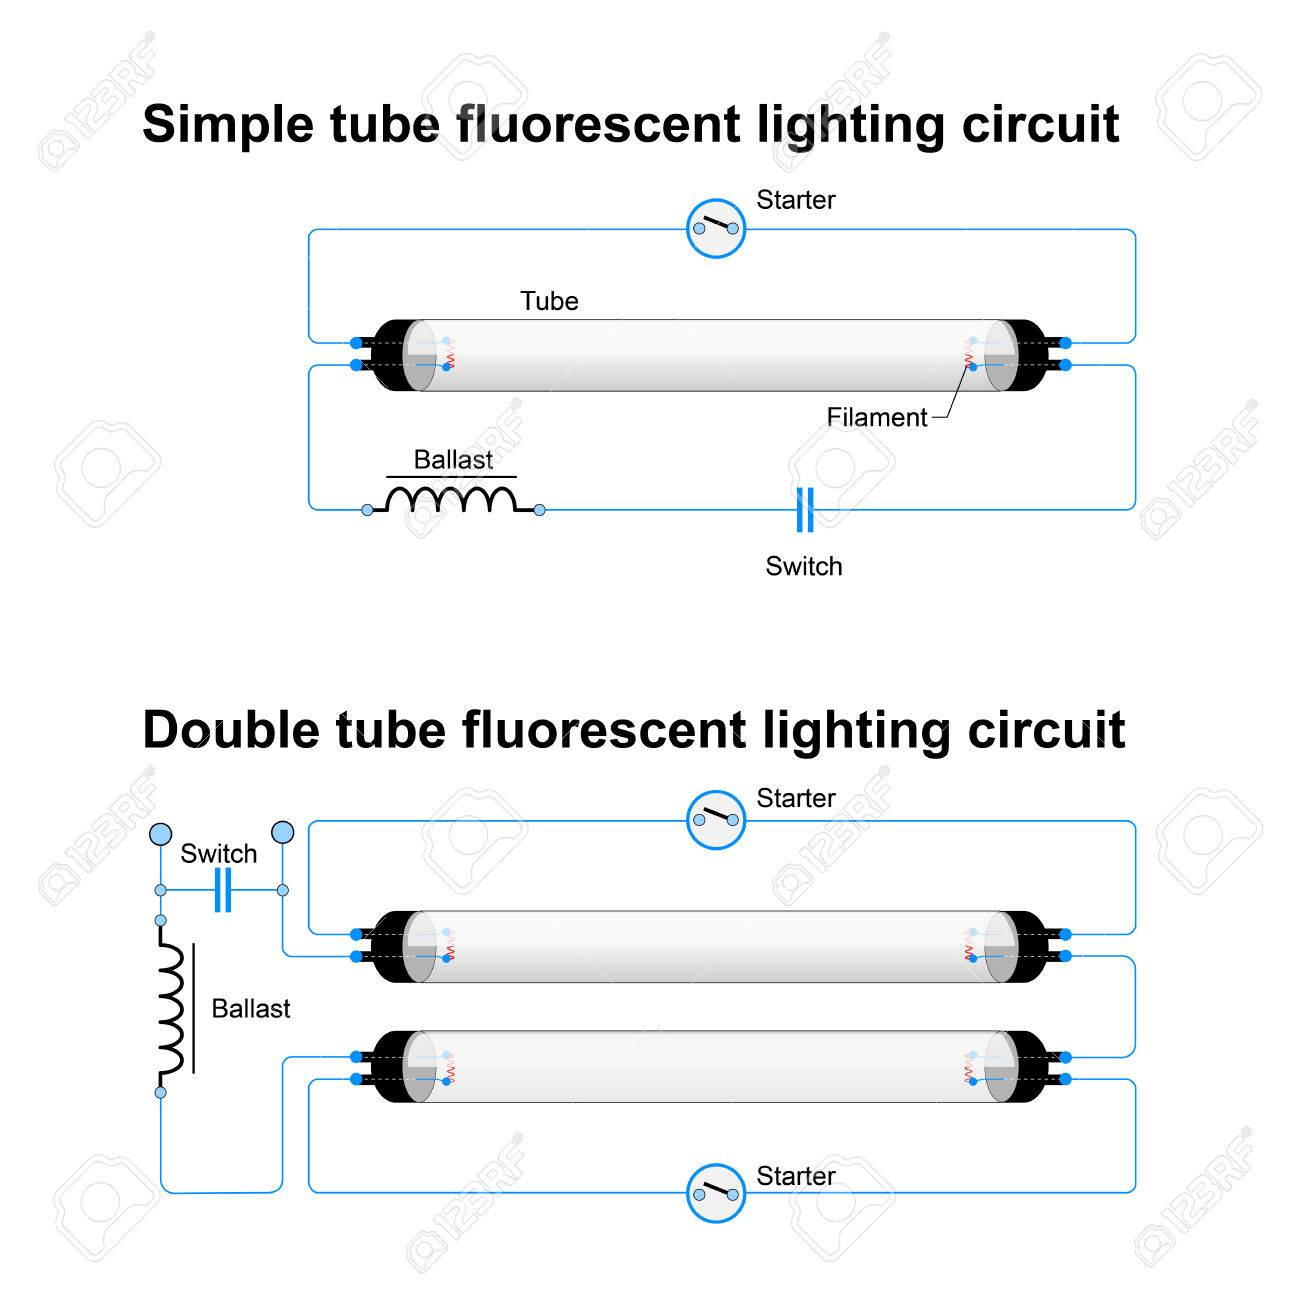 single and double tube fluorescent lighting circuit simple vector T12 Magnetic Ballast Wiring Diagram single and double tube fluorescent lighting circuit simple vector diagram stock vector 68864844